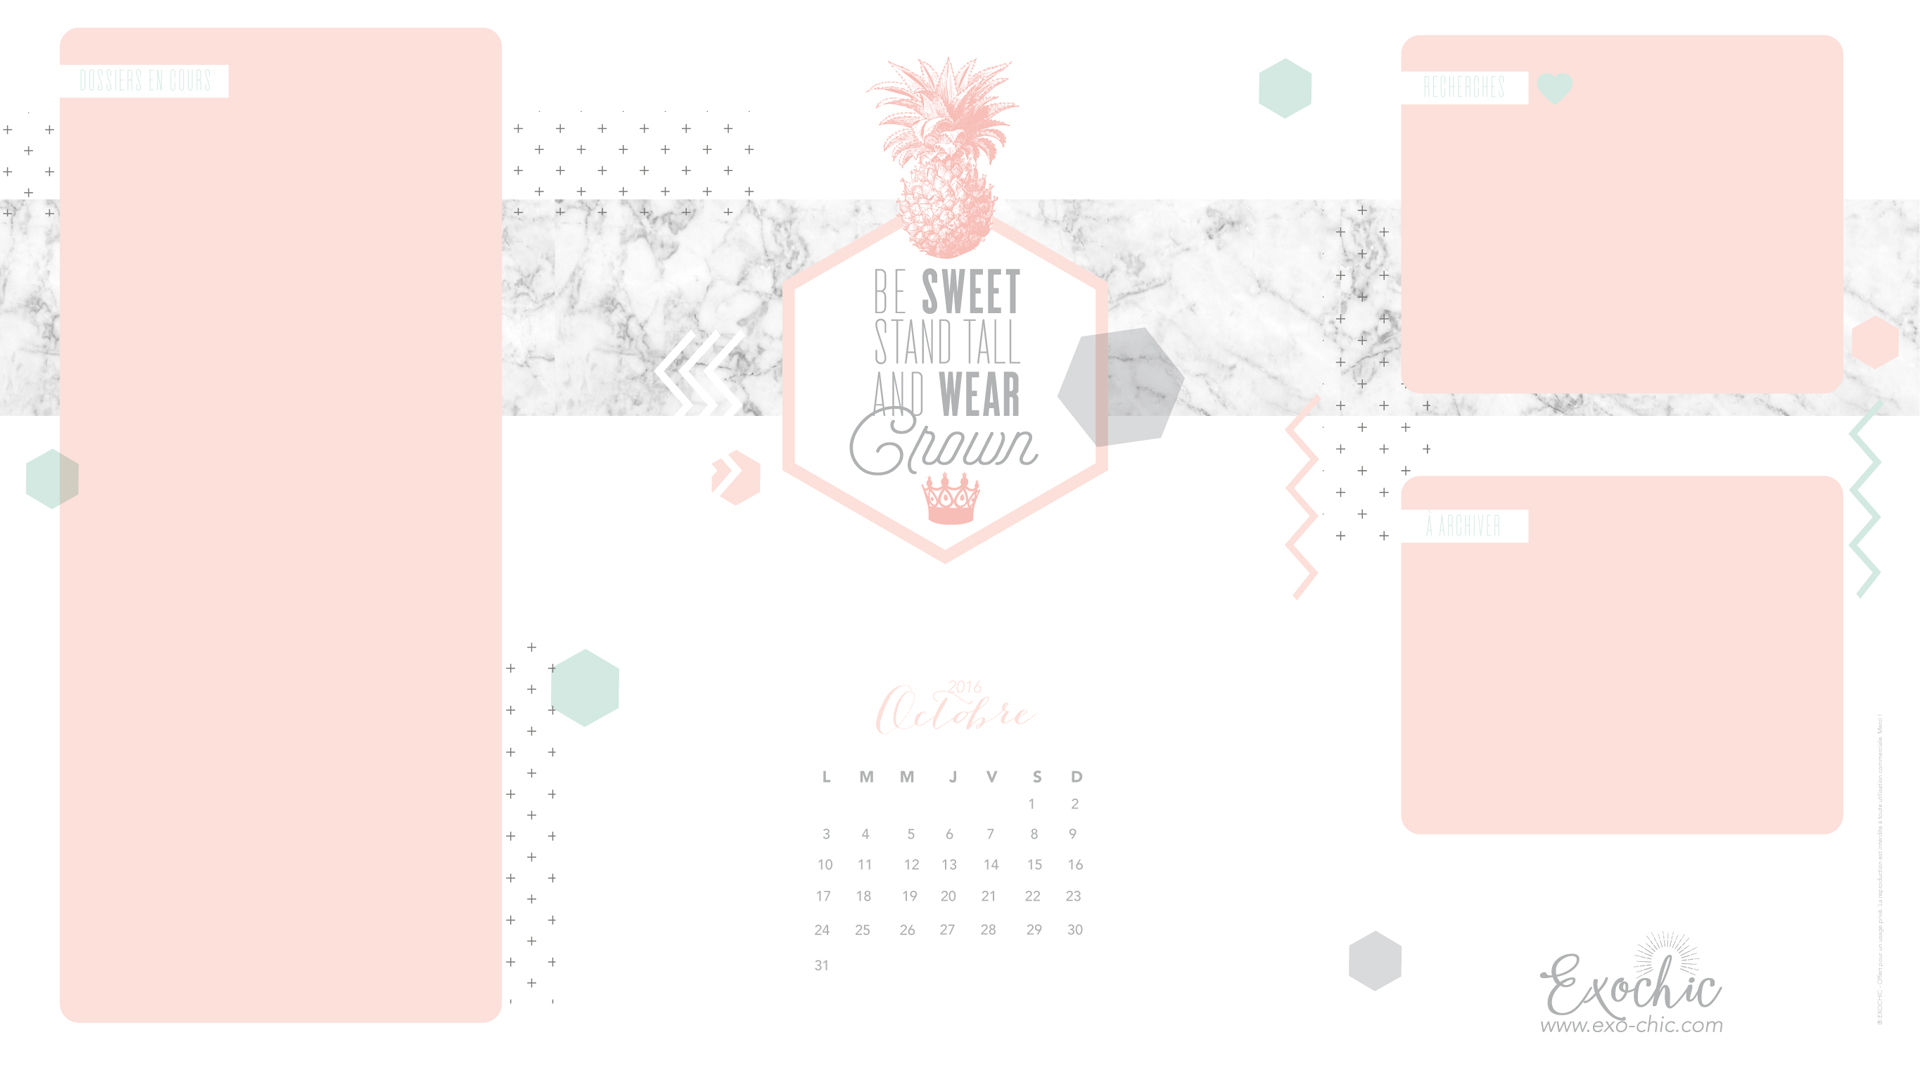 Fond Ecran Free Printable Octobre Be Sweet Stand Tall And Wear